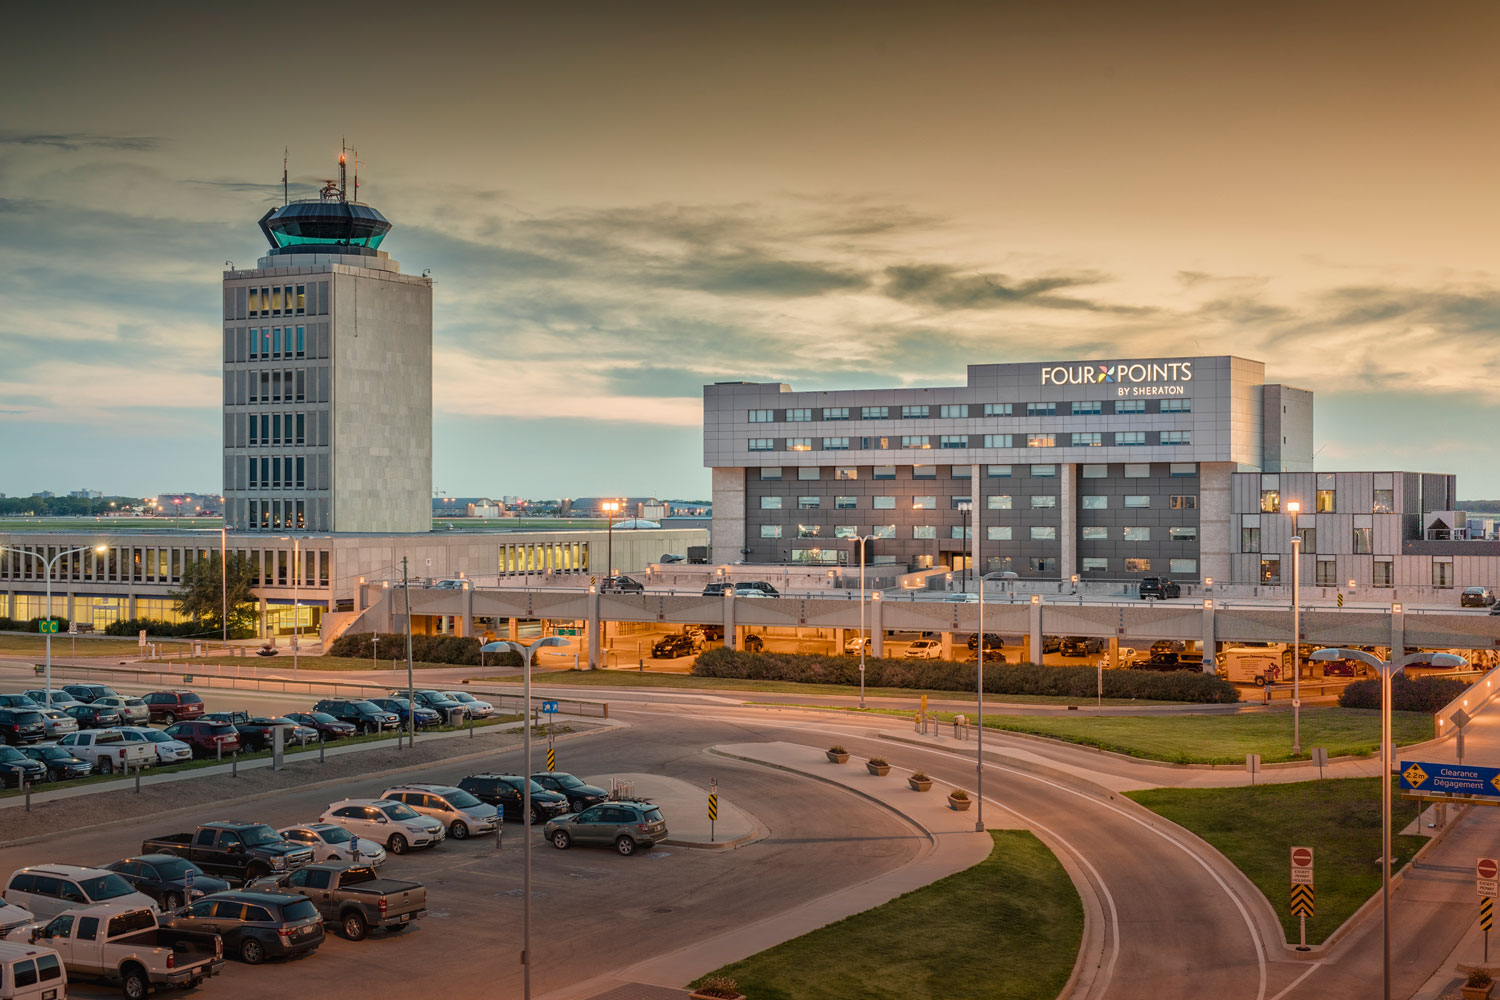 cohlmeyer-winnipeg-architecture-airport.jpg